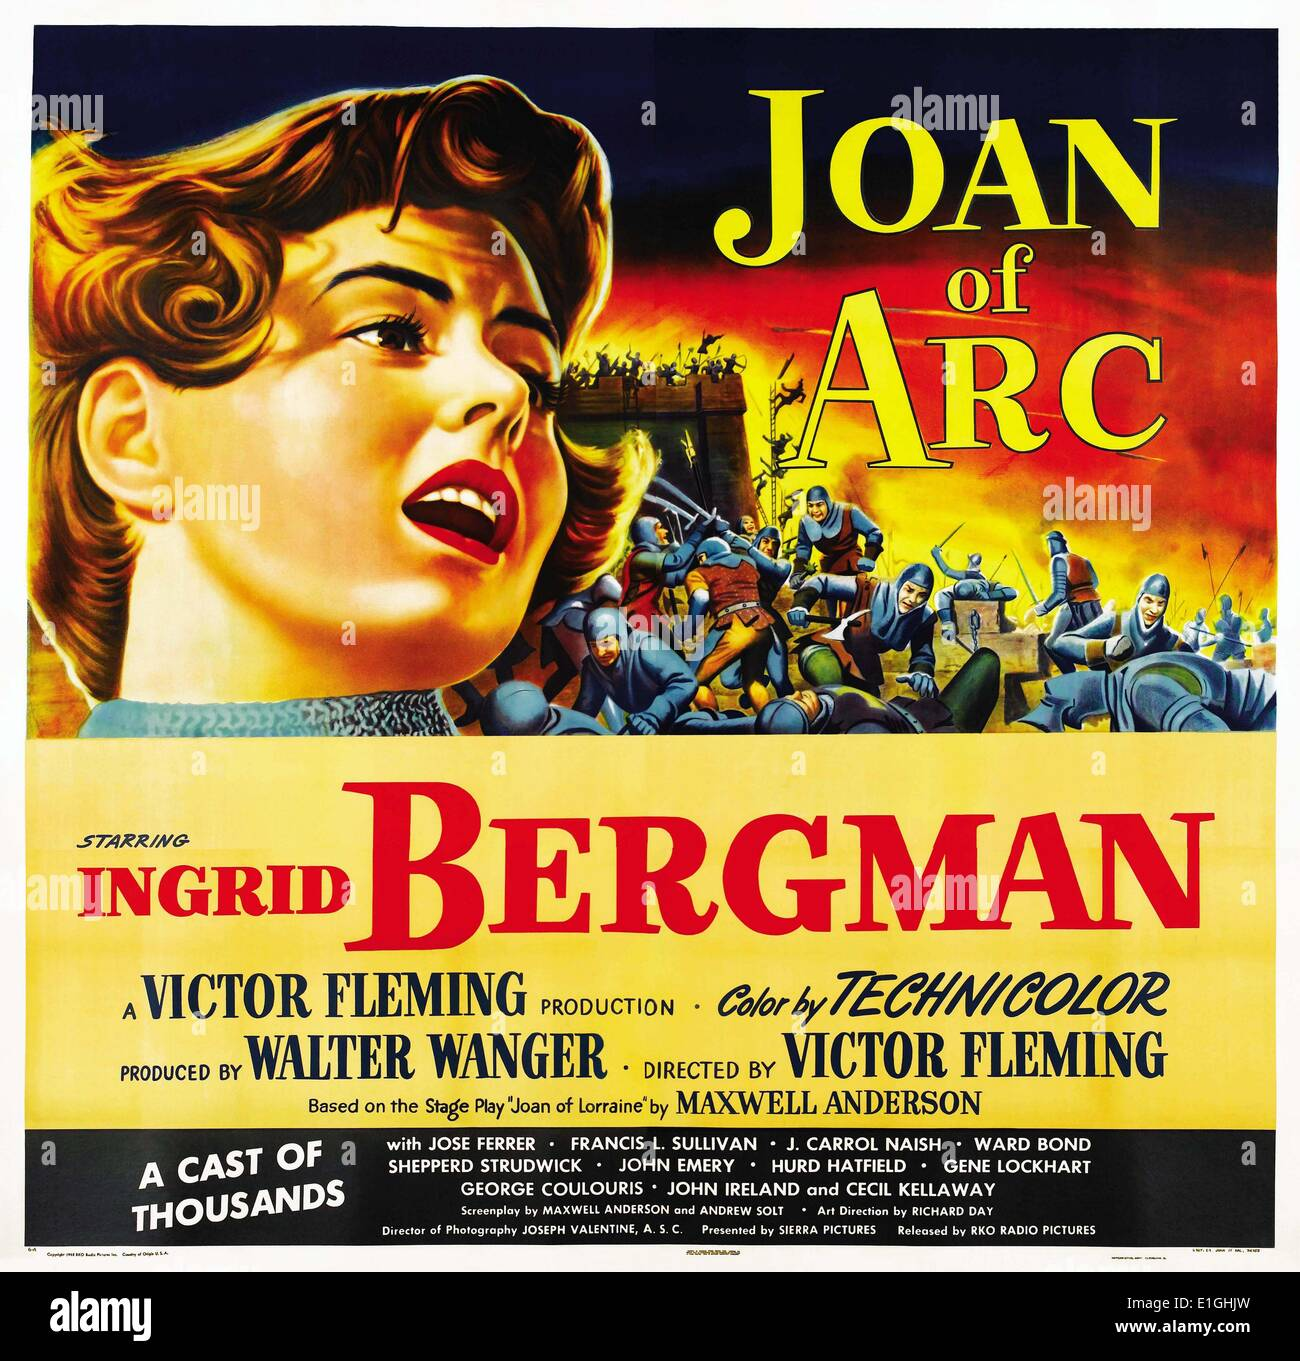 """Joan of Arc"" ein 1948 amerikanische epische historisches Drama film starring Ingrid Bergman. Stockbild"